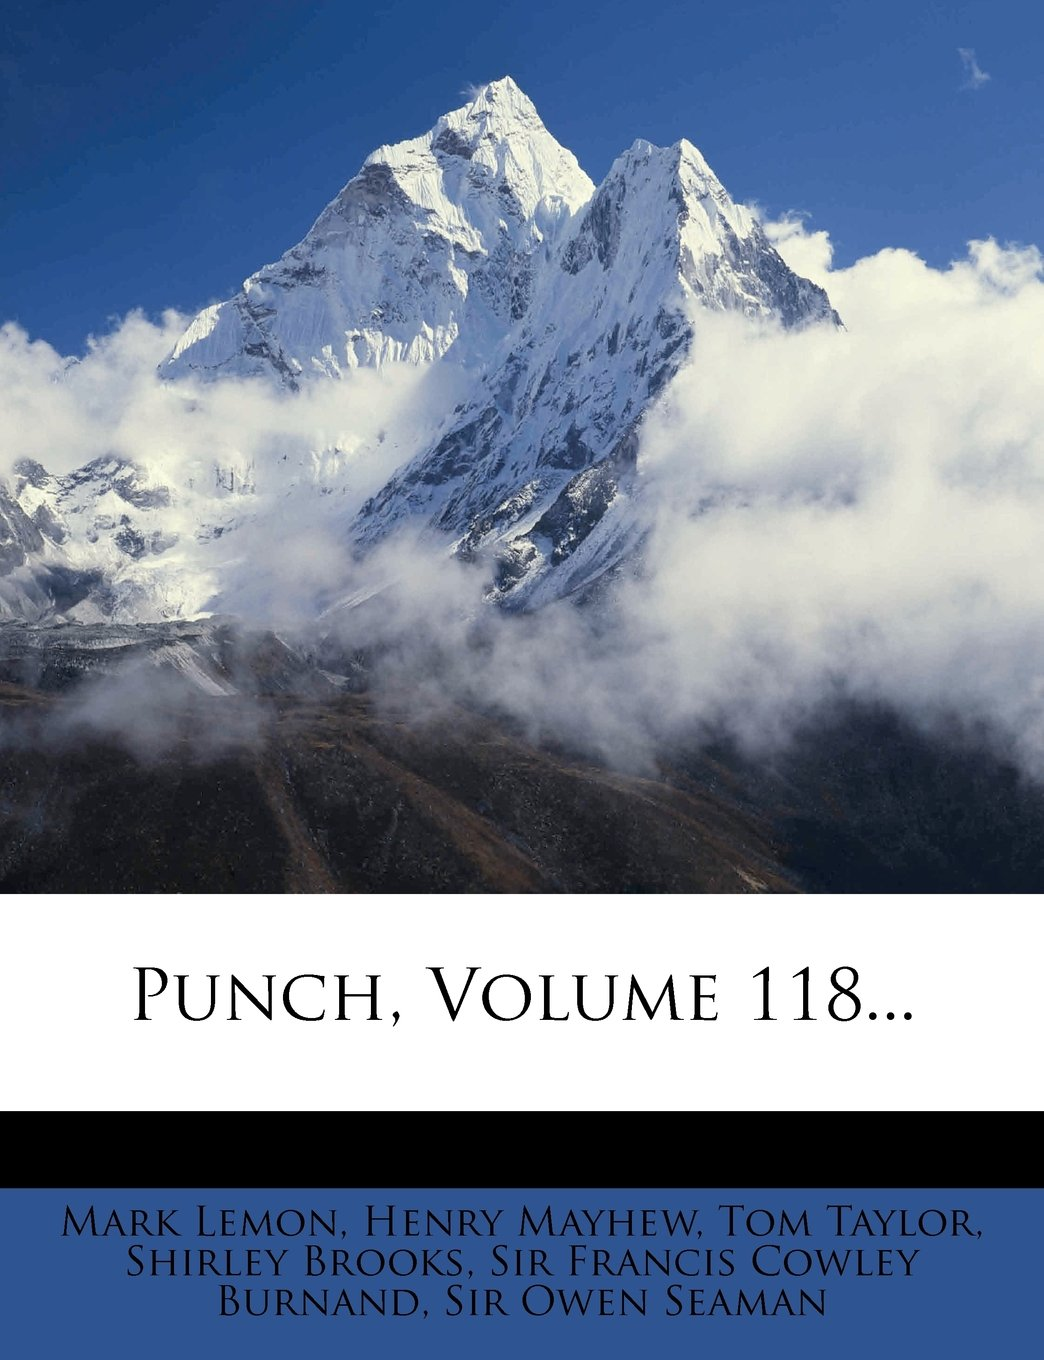 Punch, Volume 118... Text fb2 ebook